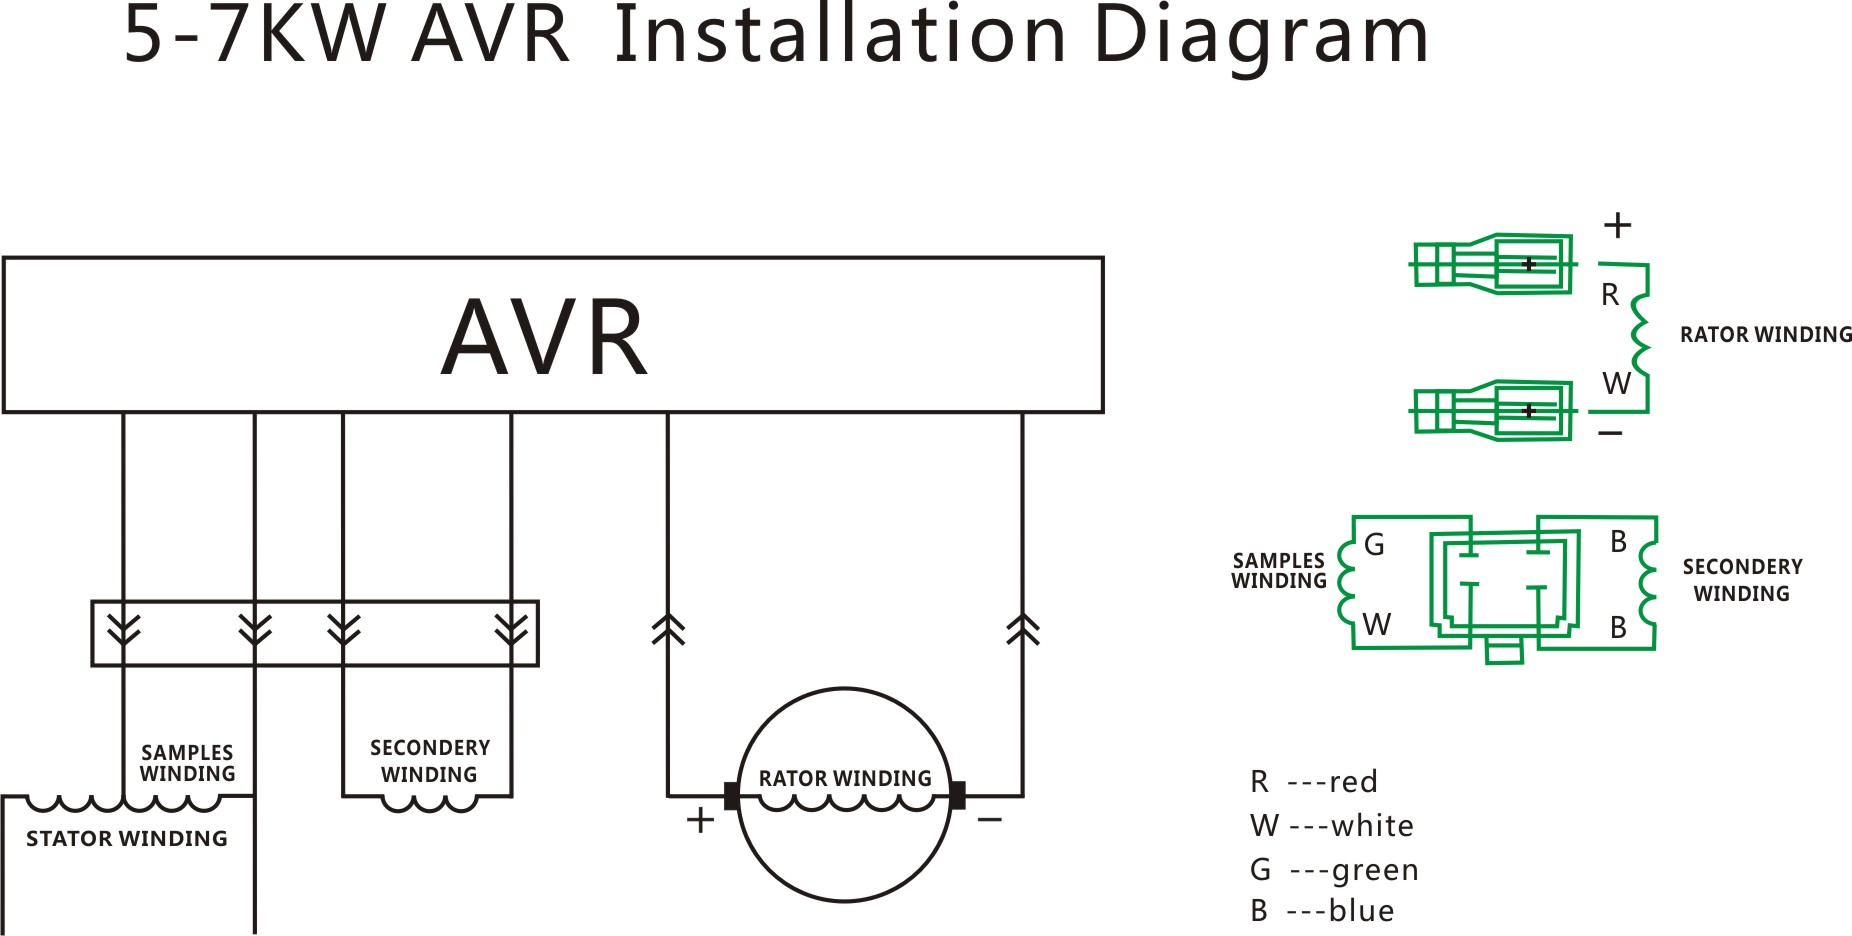 5 7KW AVR install diagram how to replacing portable generator avr? china avr alternator diesel generator avr wiring diagram pdf at edmiracle.co